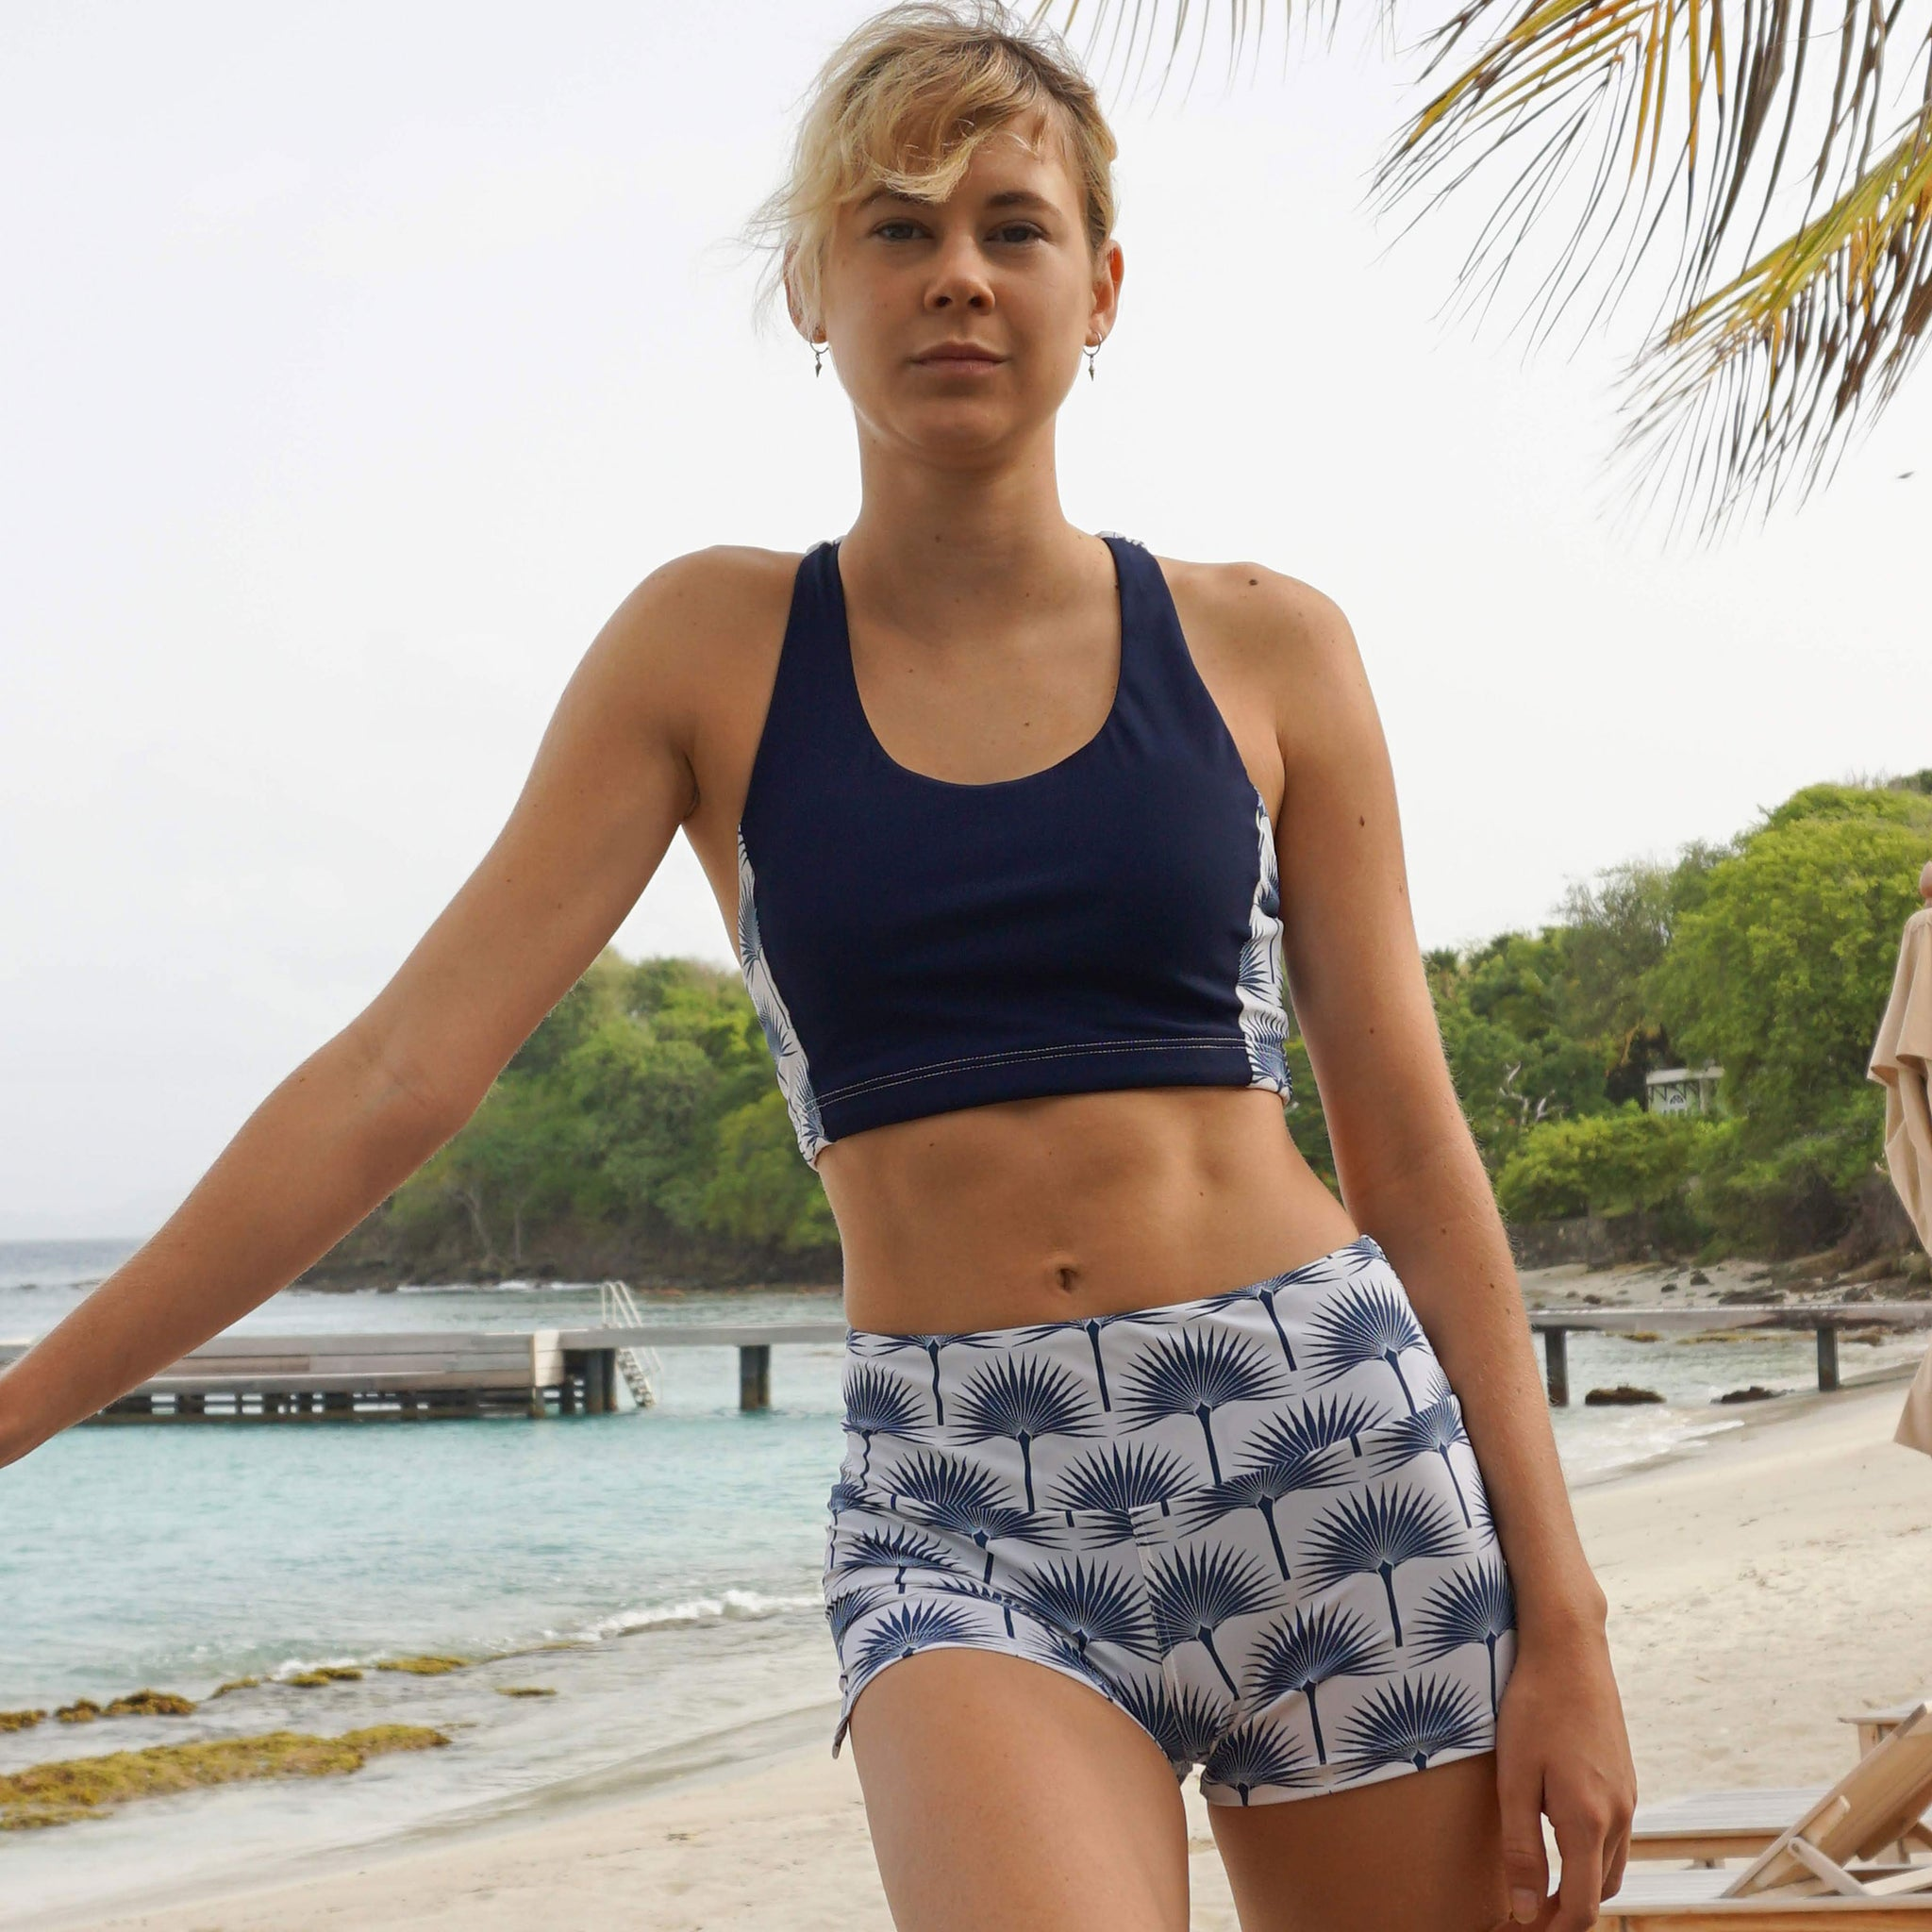 d1c1969302e69 Sports Cropped Top : FAN PALM NAVY designed by Lotty B Mustique lifestyle